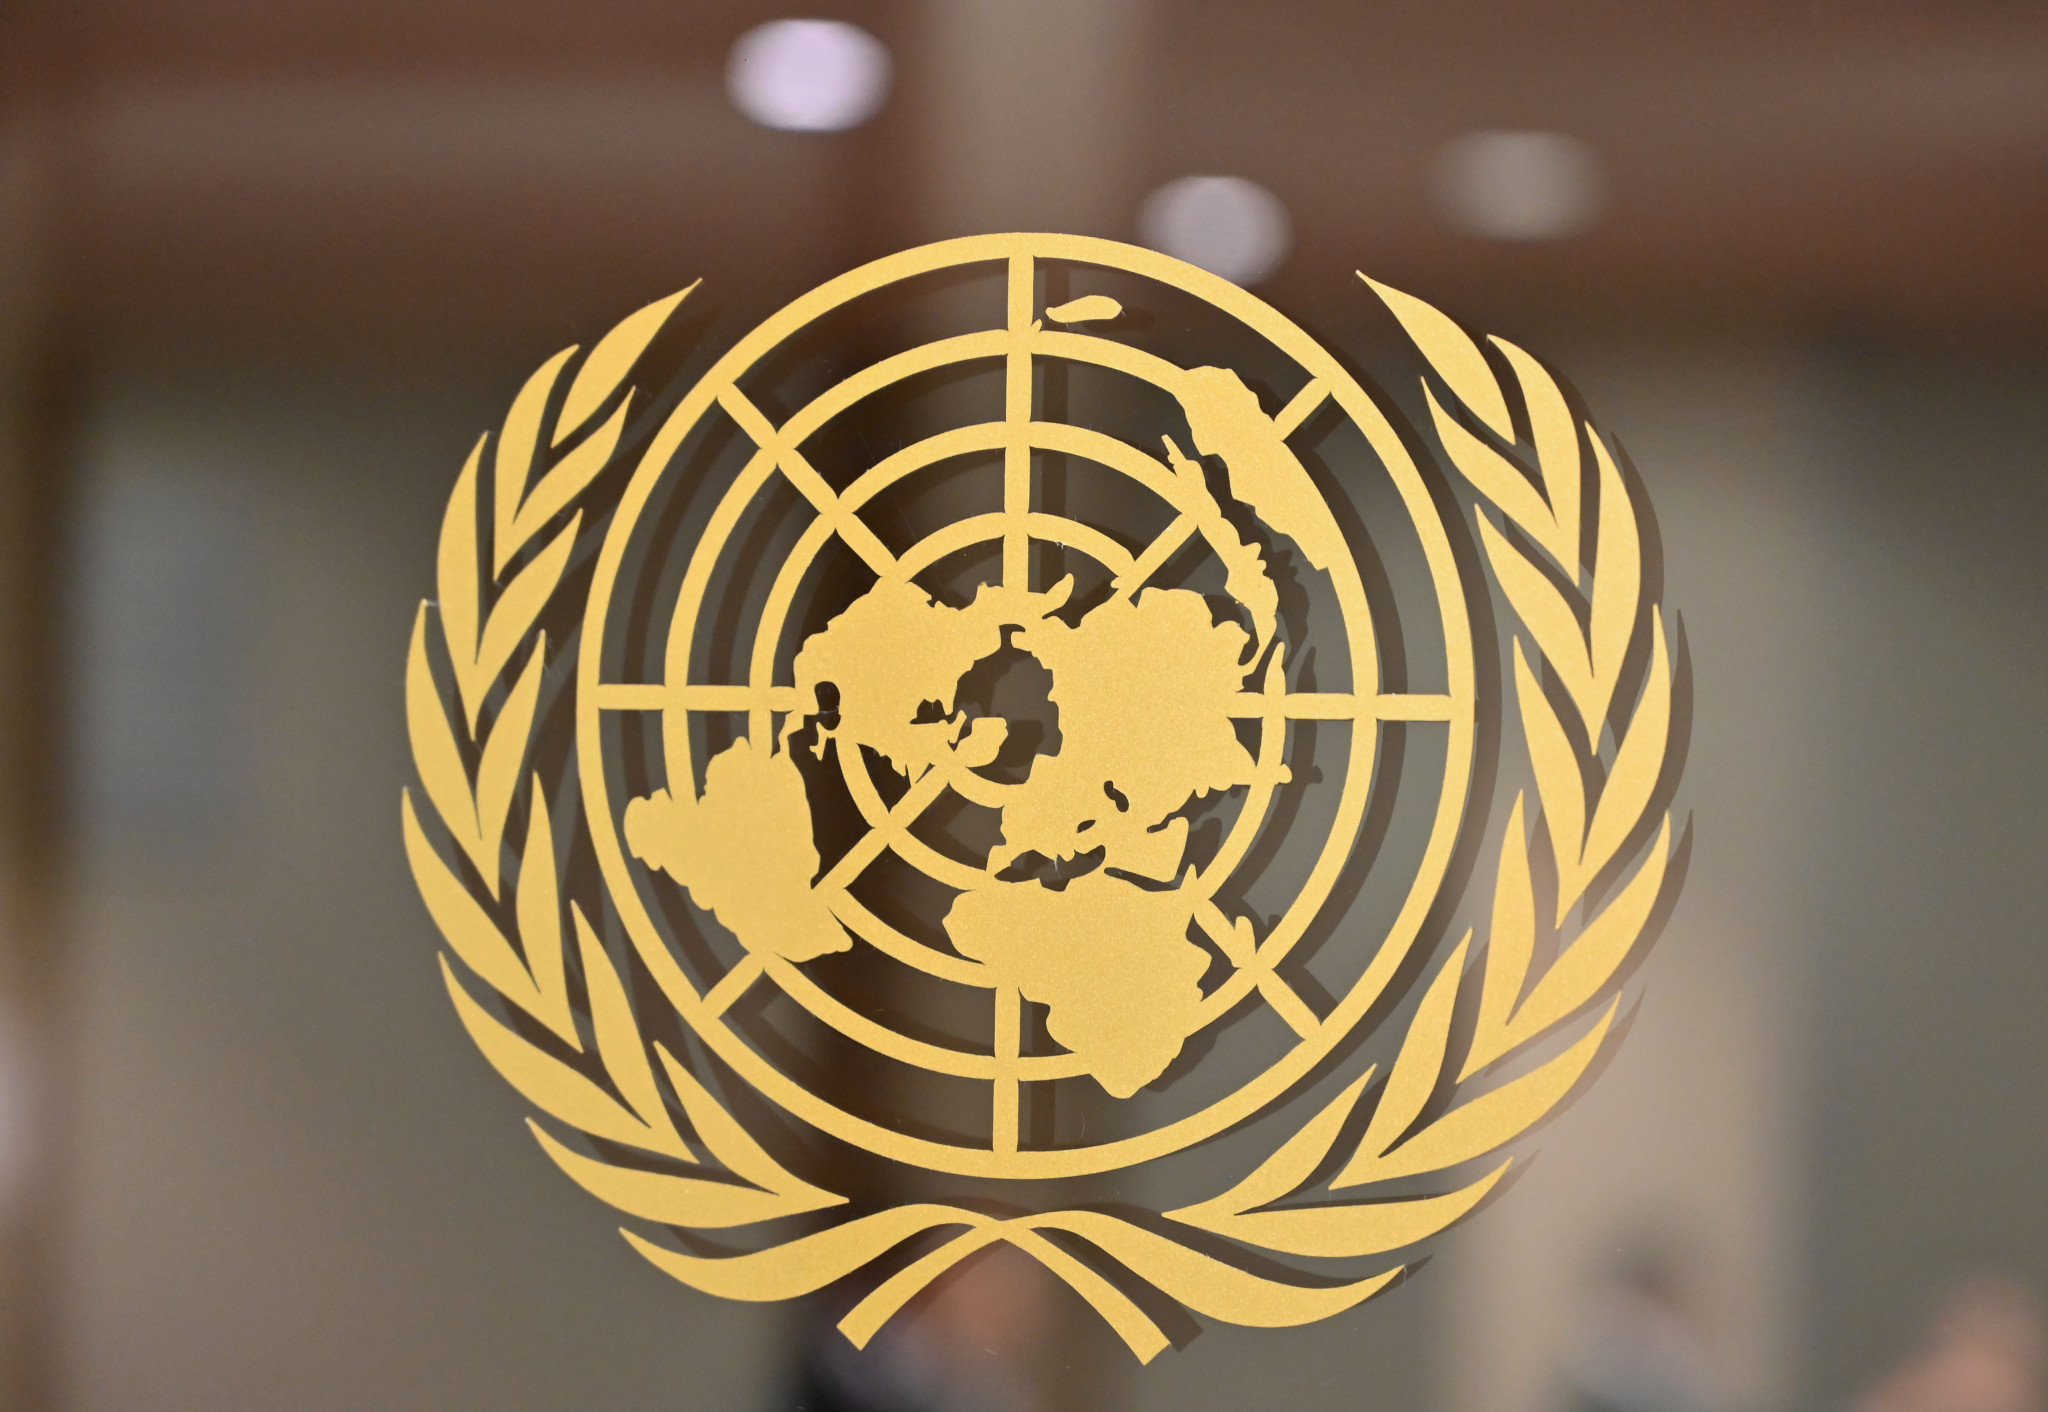 AOC becomes signatory of UN Sports for Climate Action Framework